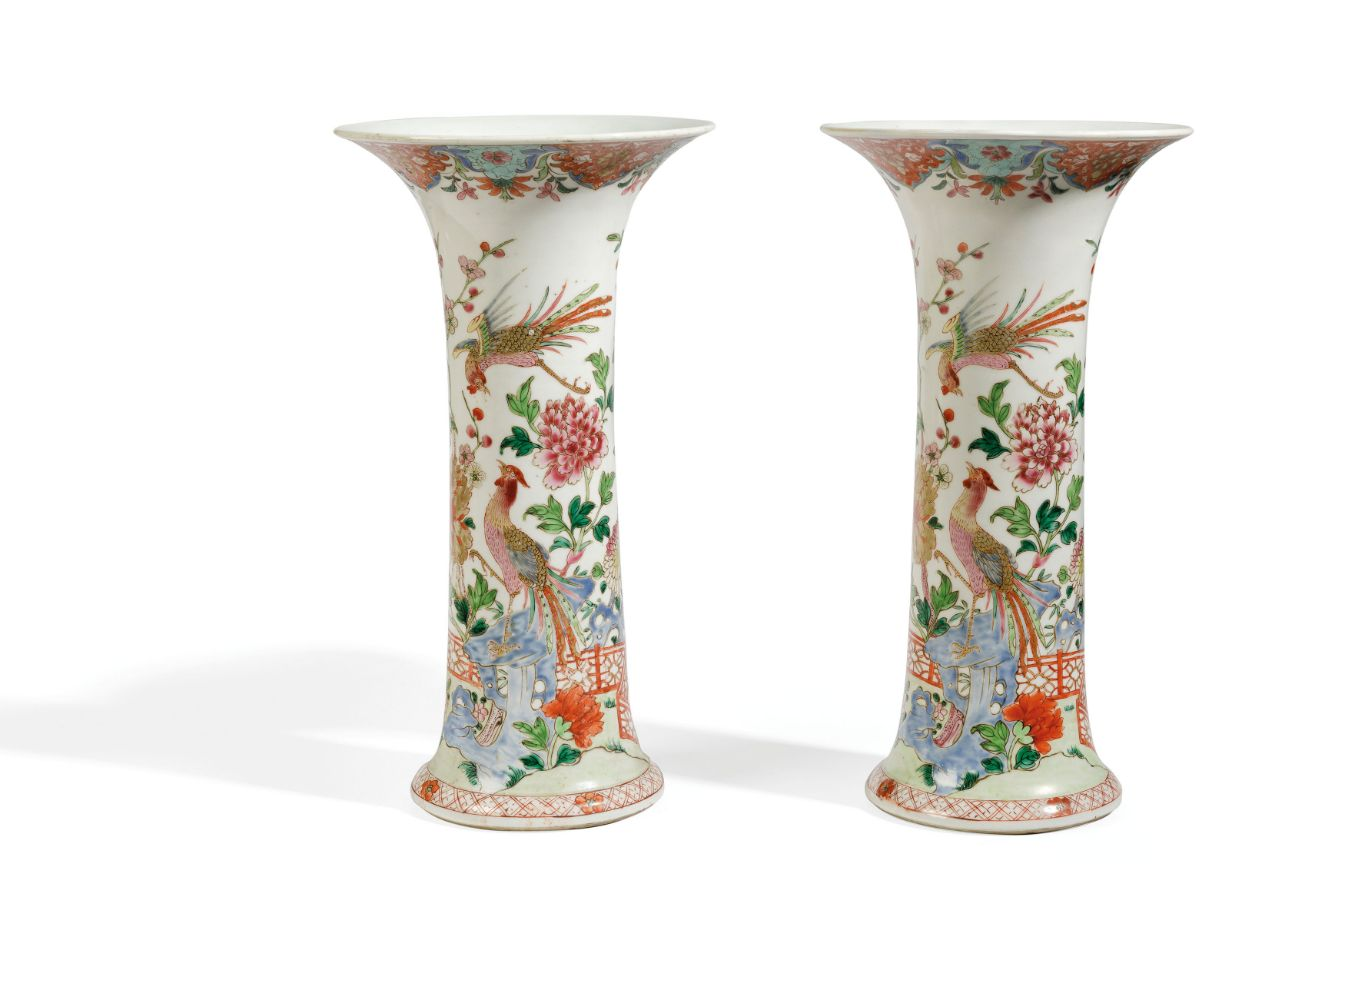 CHINESE PORCELAINS AND WORKS OF ART FROM DISTINGUISHED PRIVATE ITALIAN COLLECTIONS